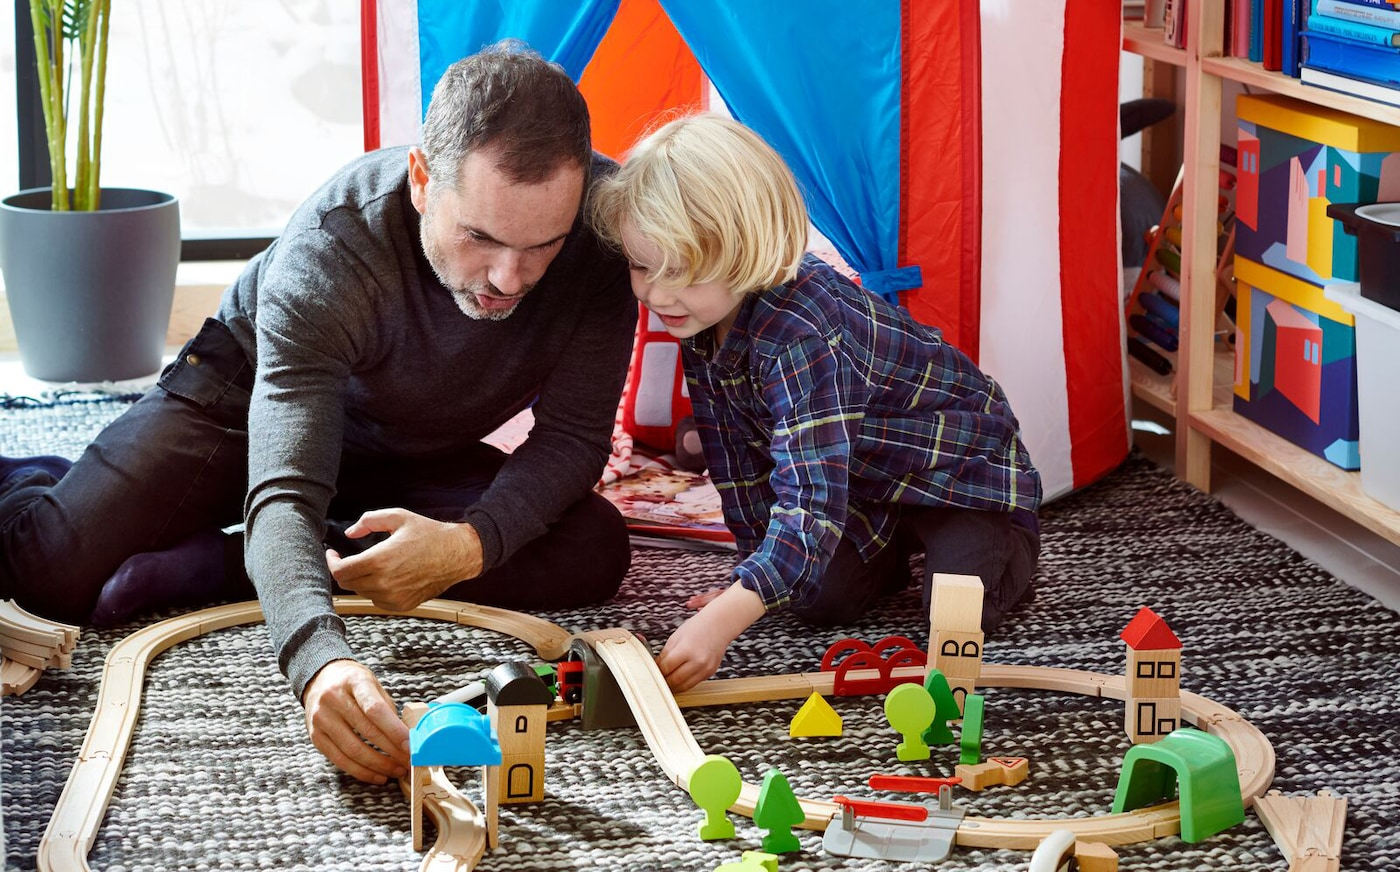 Father and child playing with LILLABO toy train set at home, with a striped play tent in the background.